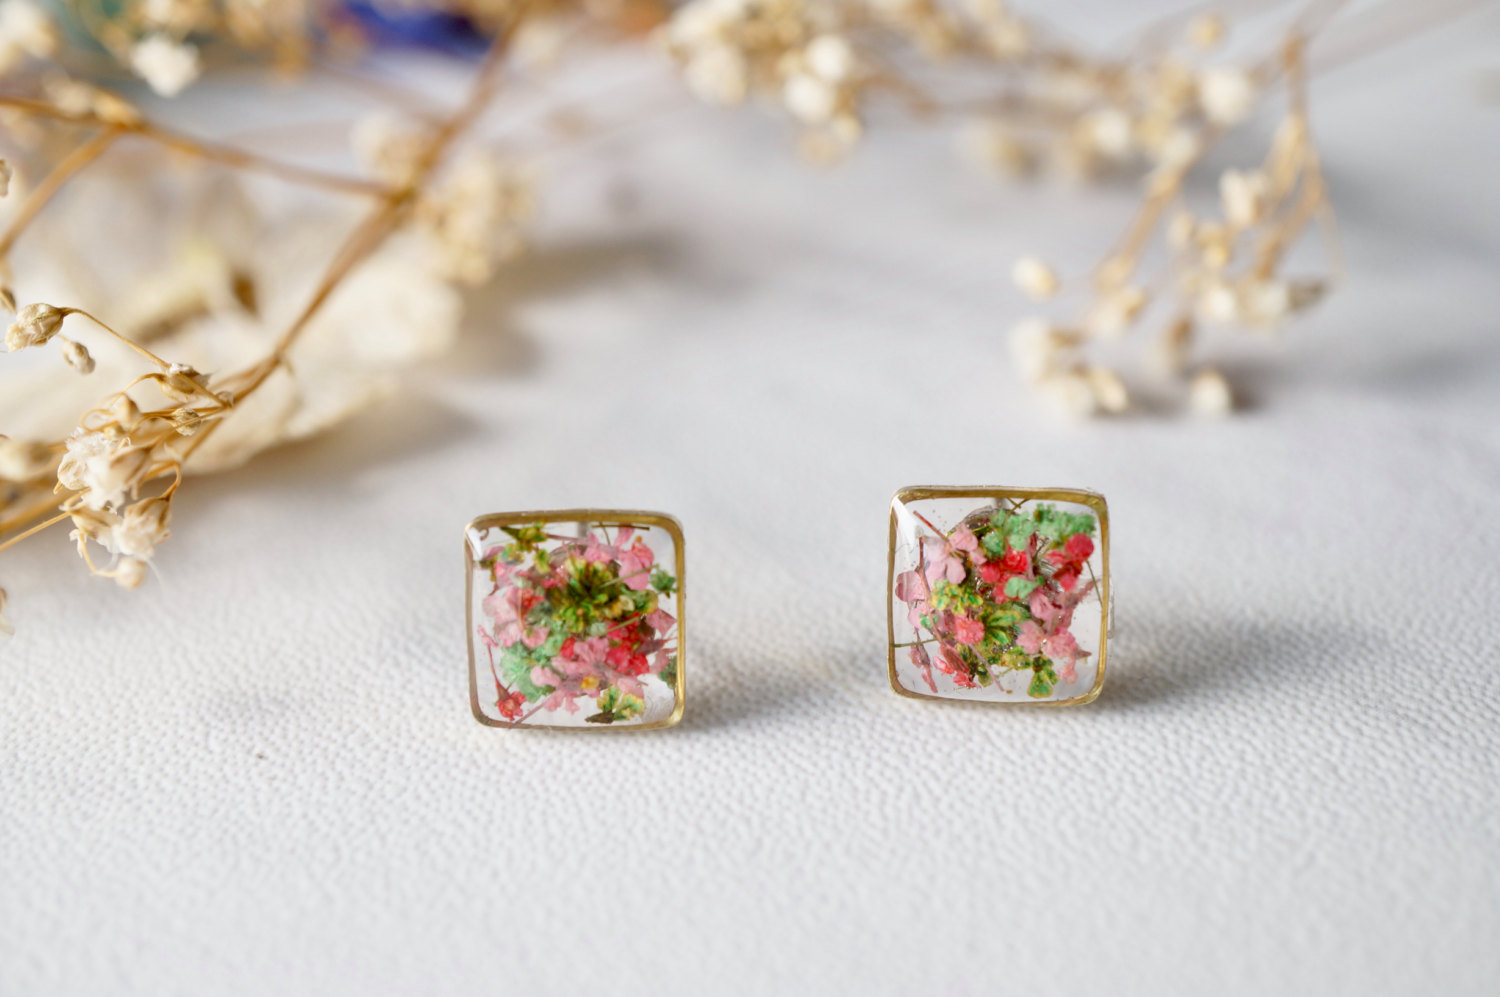 dfa91dea3 Real Dried Flowers and Resin Stud Earrings in Pink Green Mix · Ann + ...